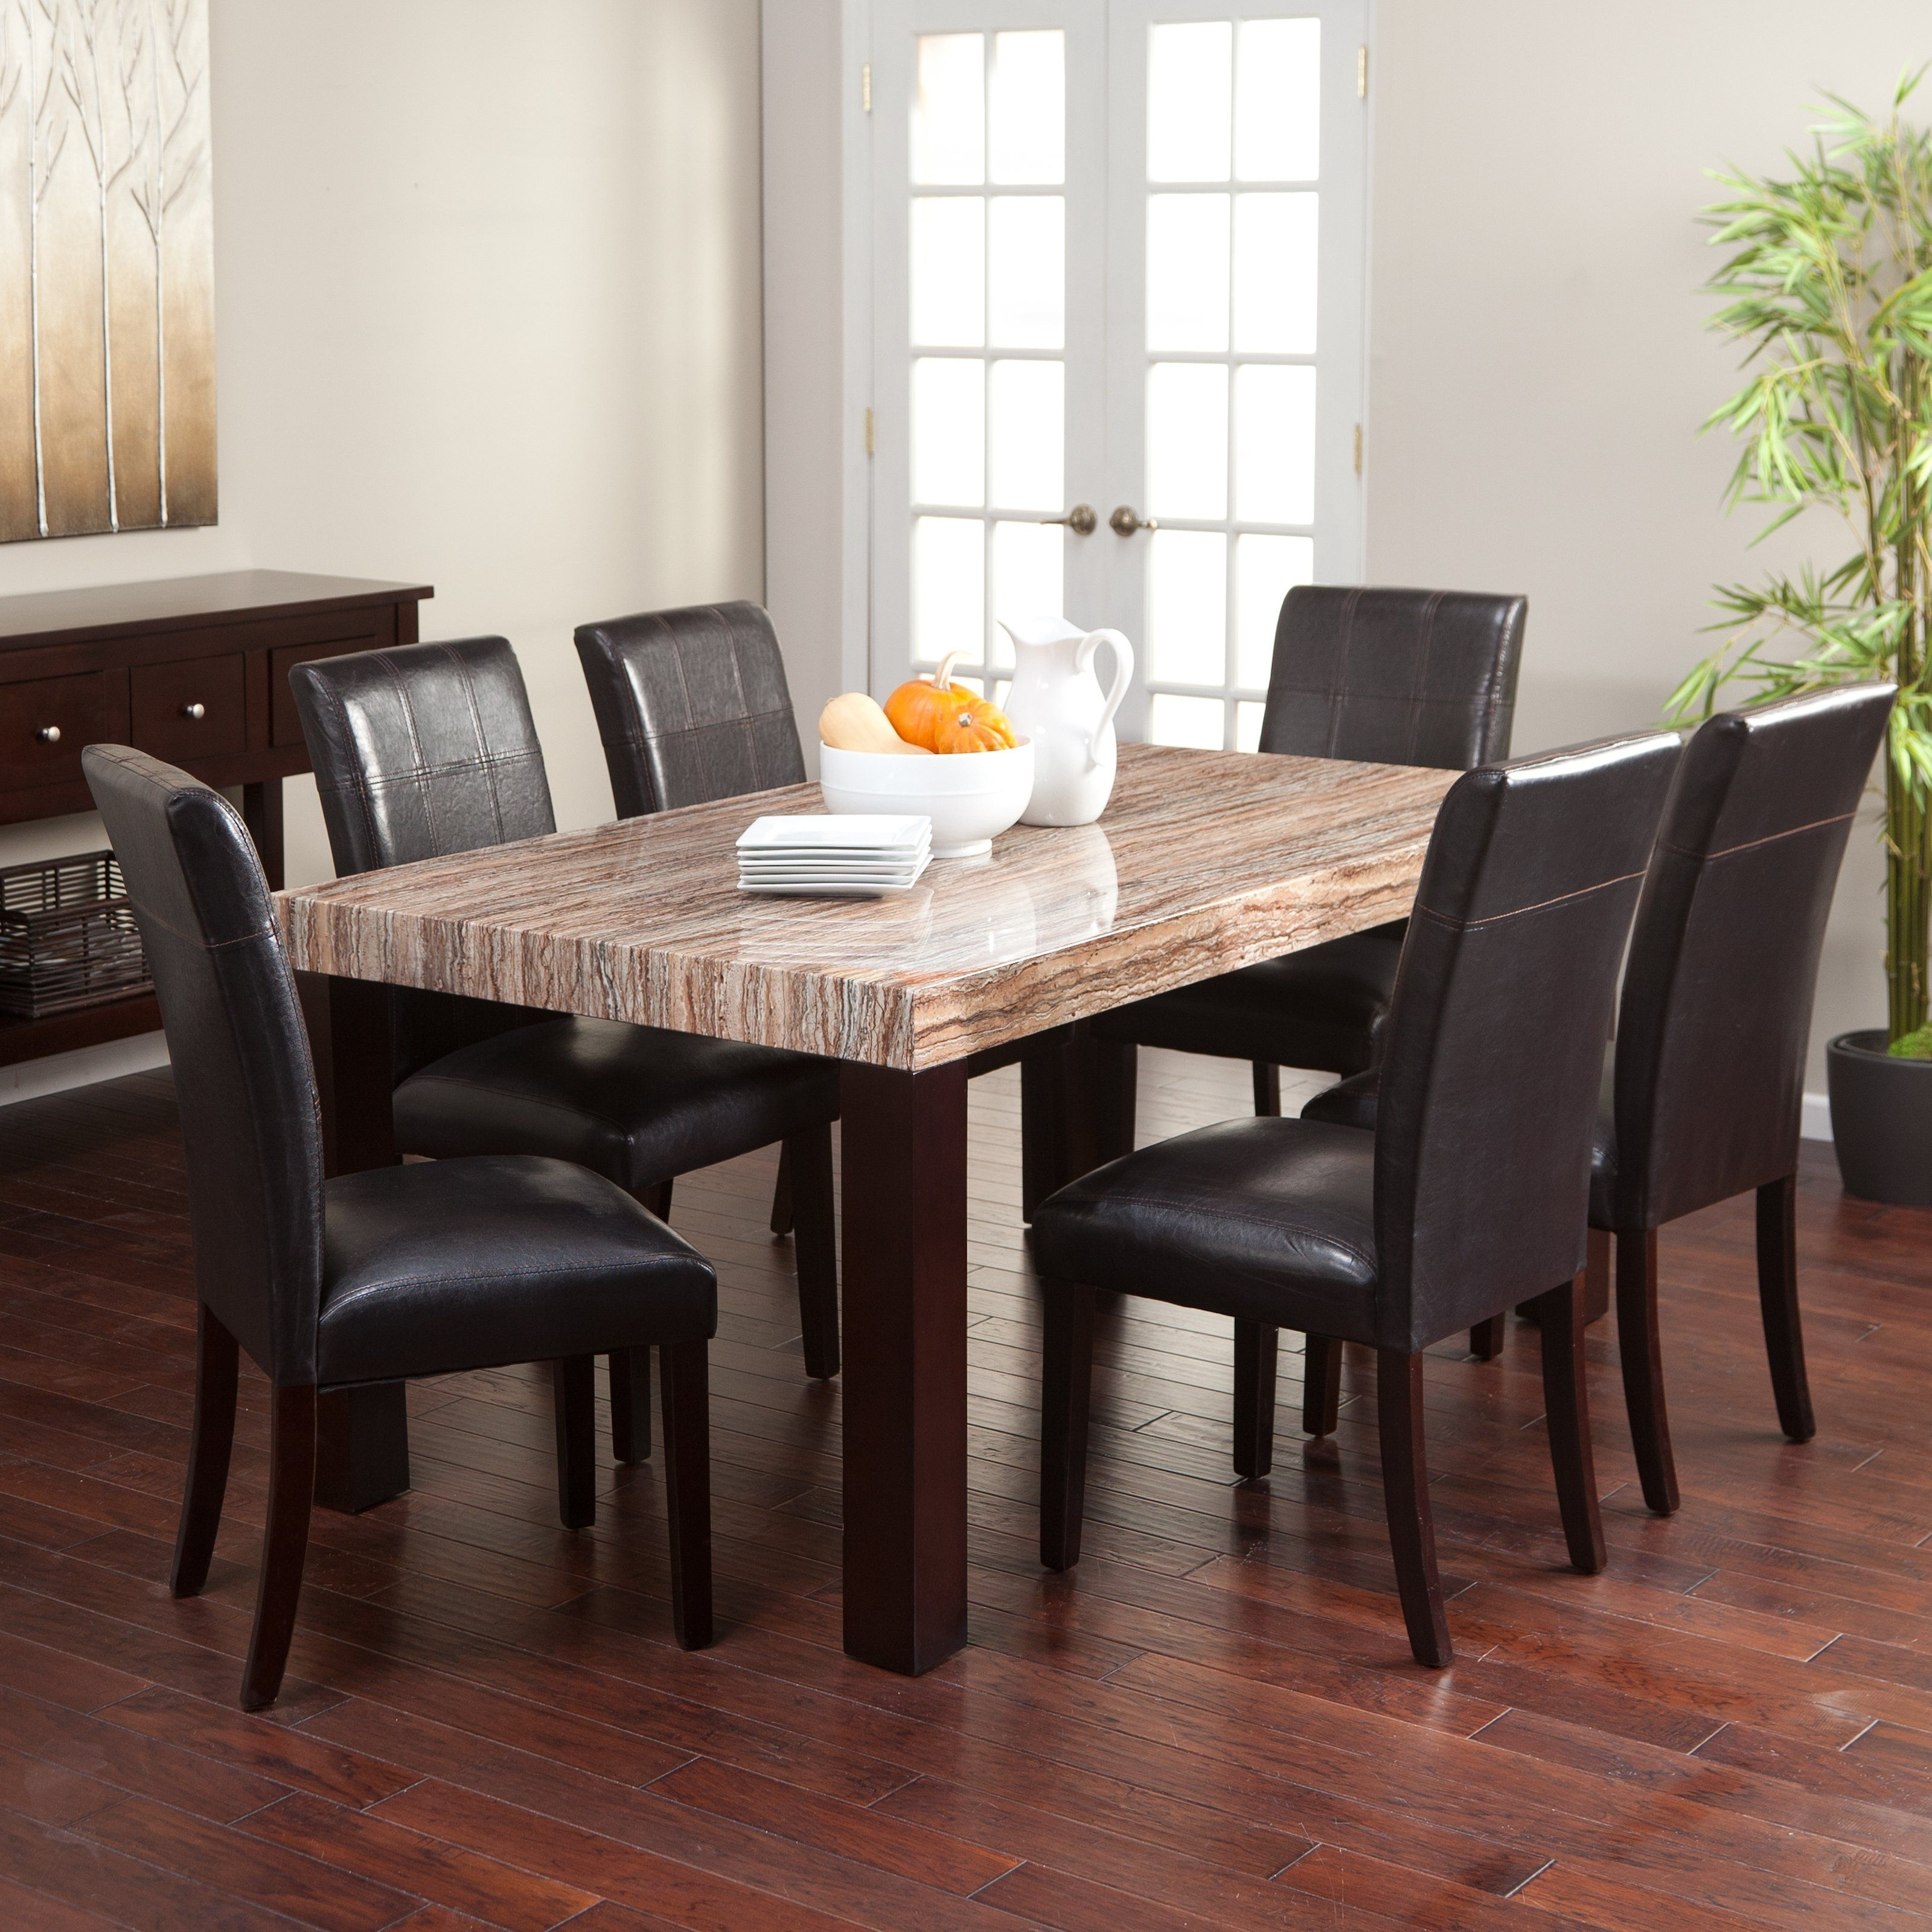 Carmine 7 Piece Dining Table Set – With Its Creamy Caramel Colored Regarding Most Up To Date Leon 7 Piece Dining Sets (View 9 of 20)